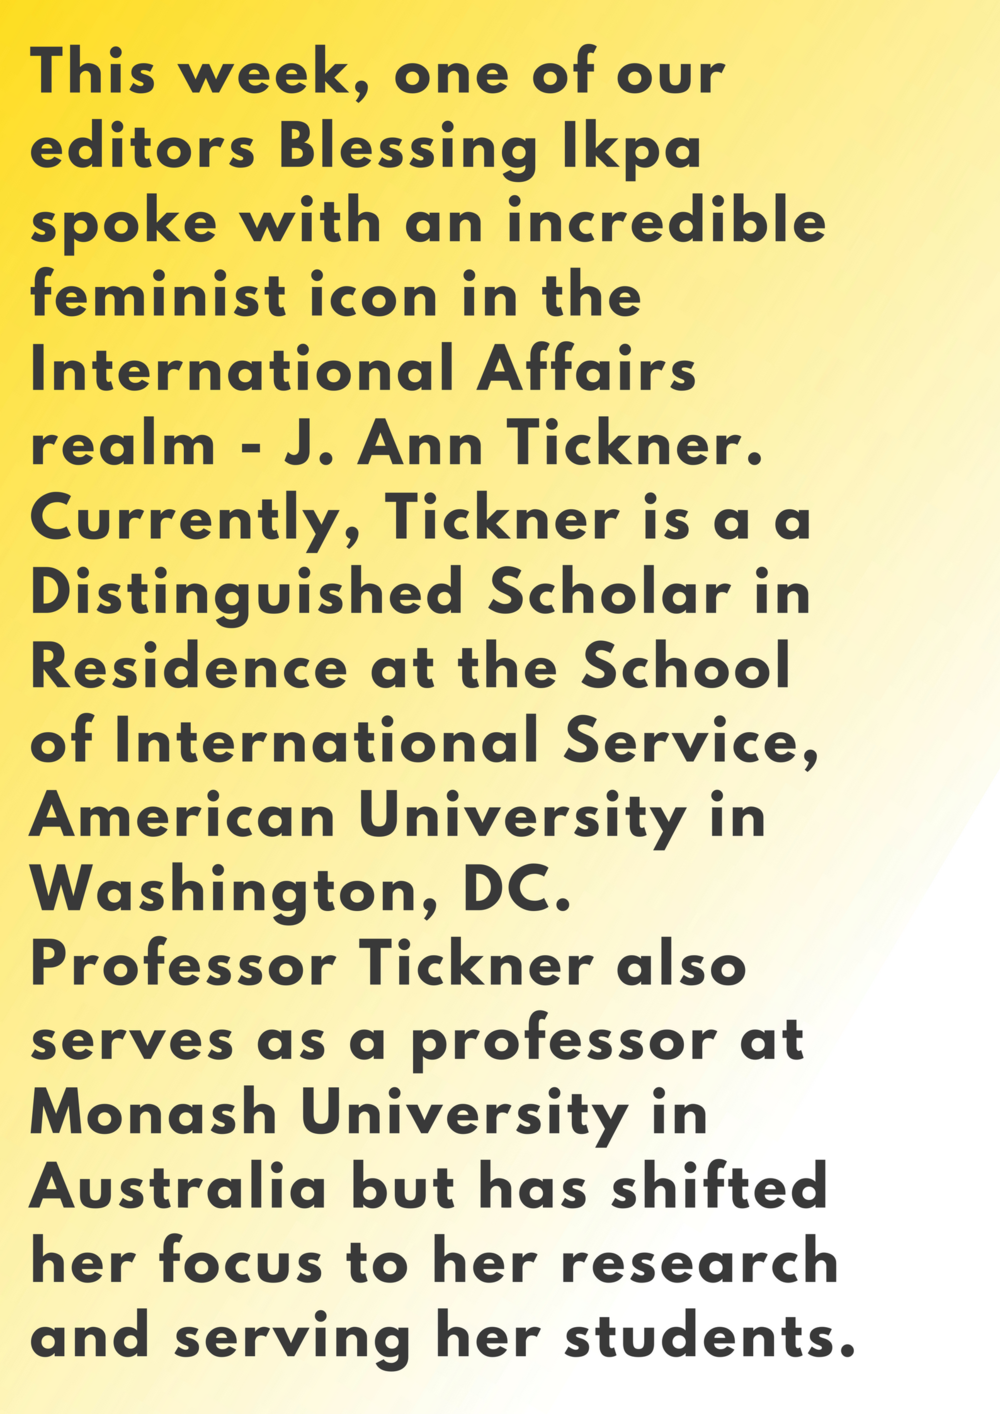 J Ann Tickner Centre for Feminist Foreign Policy